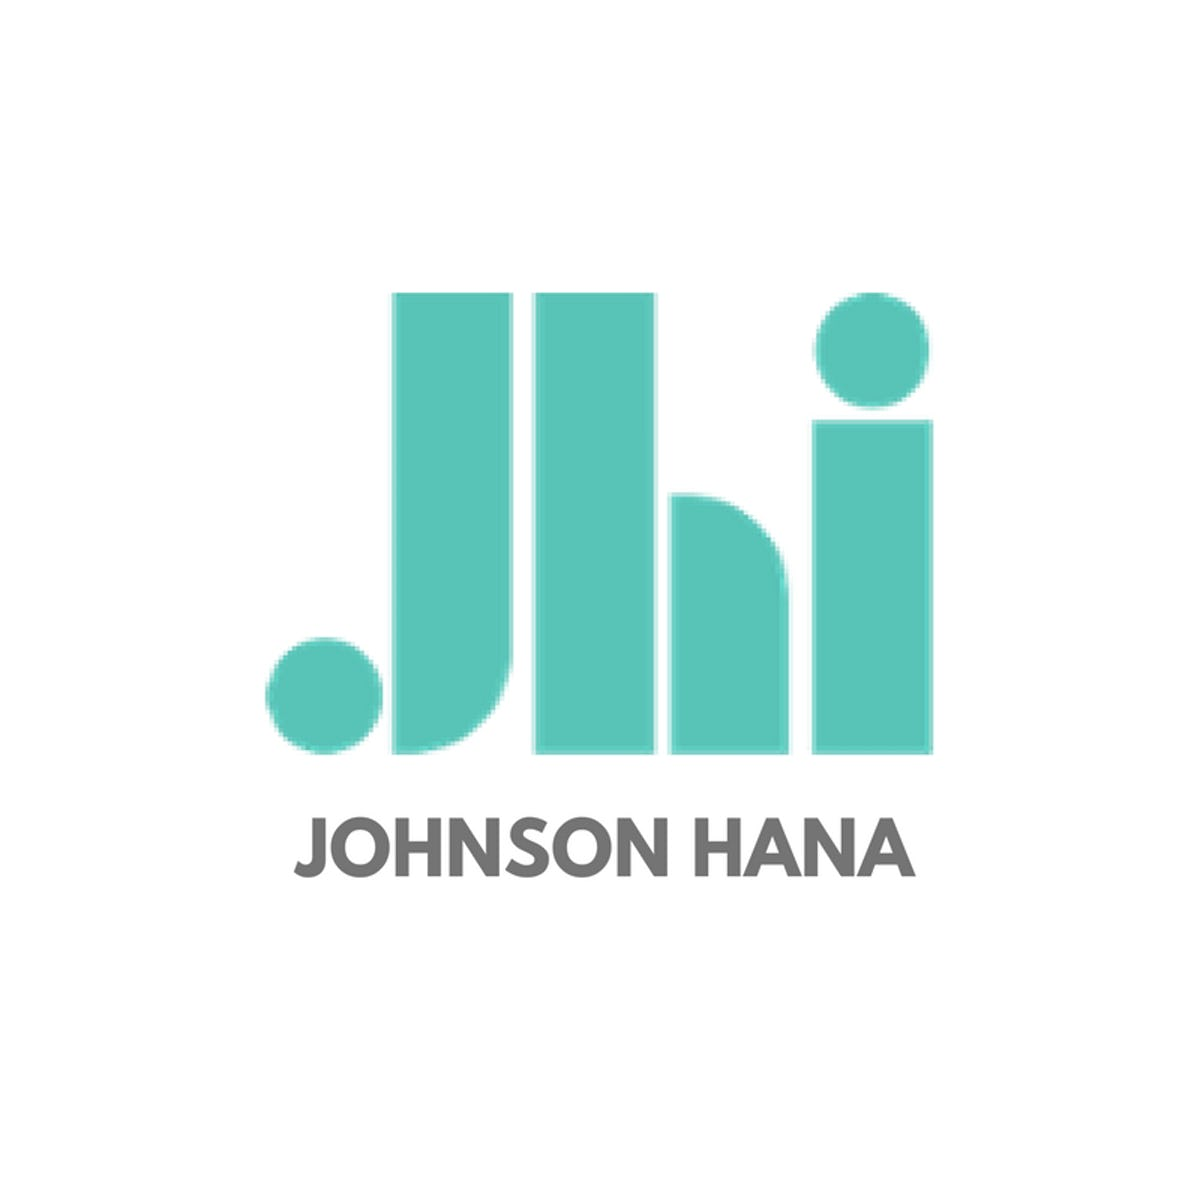 Legal services disruptor, Johnson Hana, appoints IBI Corporate Finance to lead €5 million funding round   Fees charged are typically 50% lower than those charged by traditional law firms.